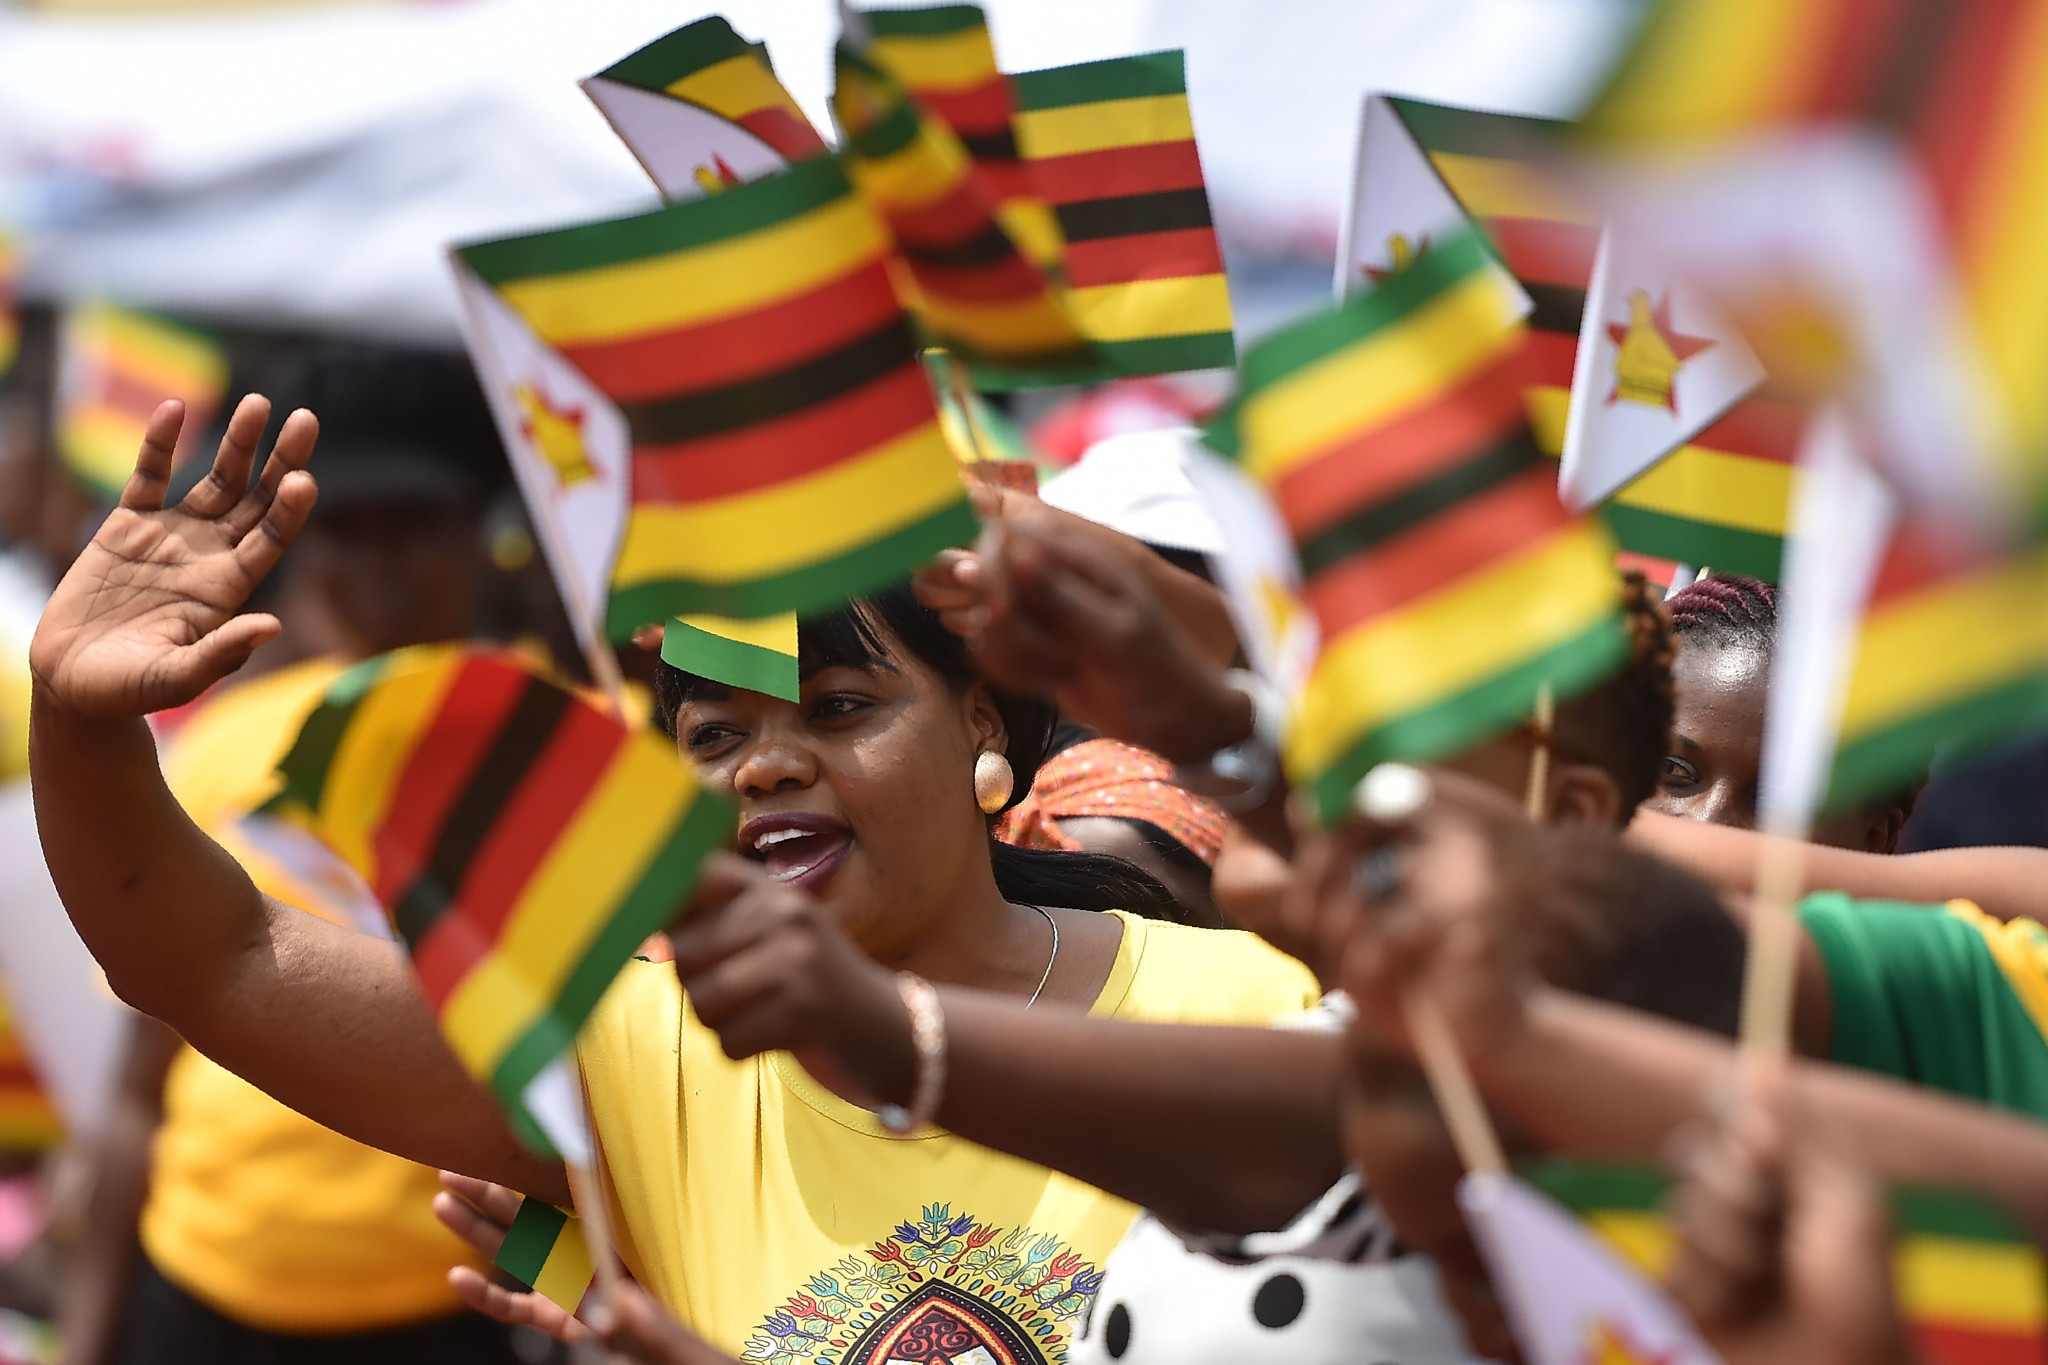 Fall of Mugabe could lead to Zimbabwe being eligible to take part in Commonwealth Games again